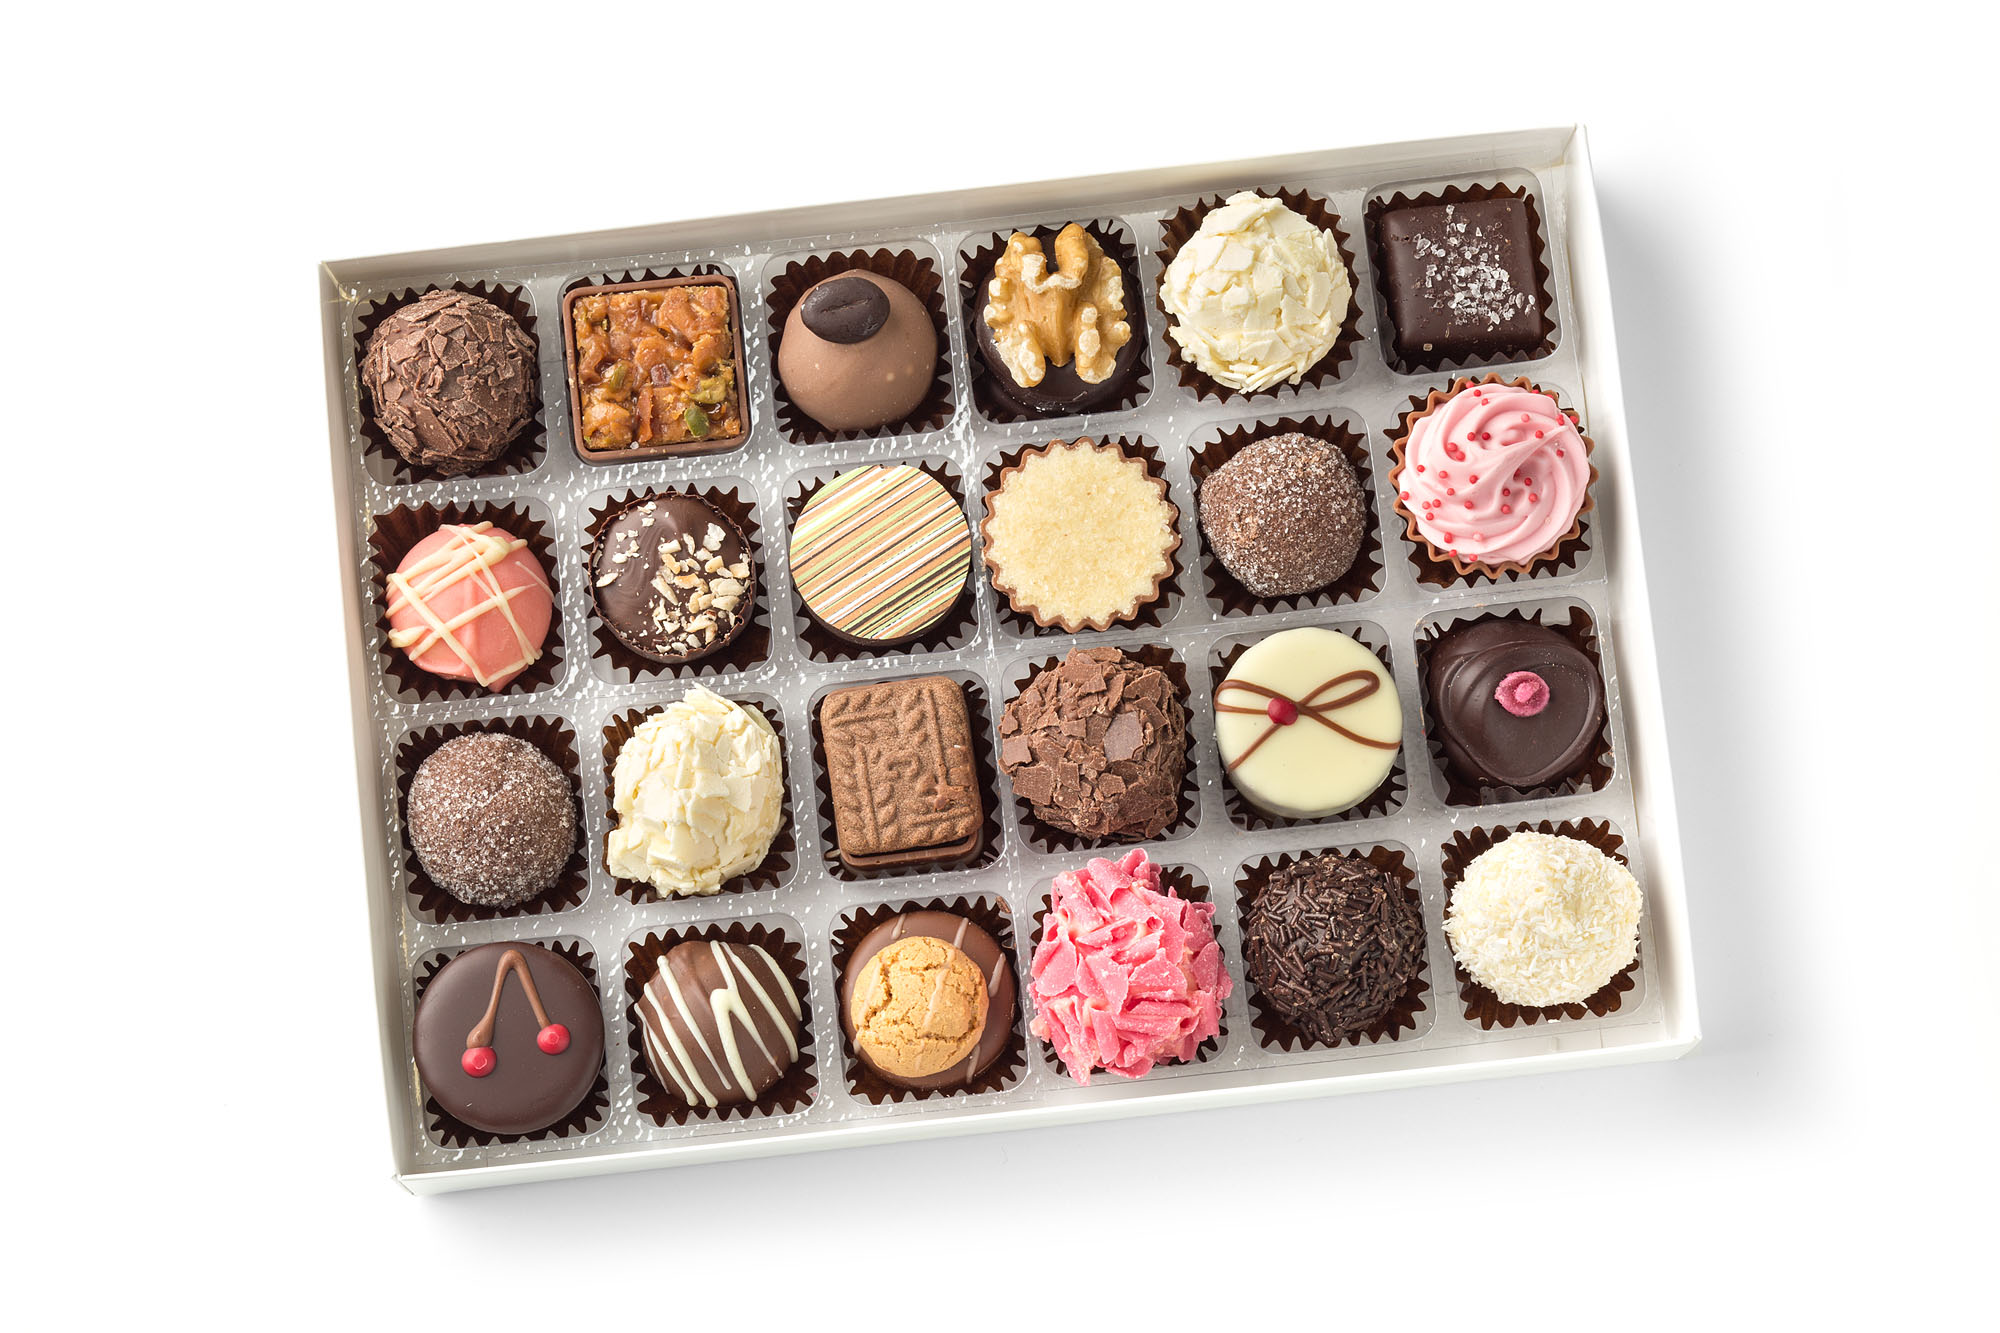 a selection of chocolates, pralines and crreams